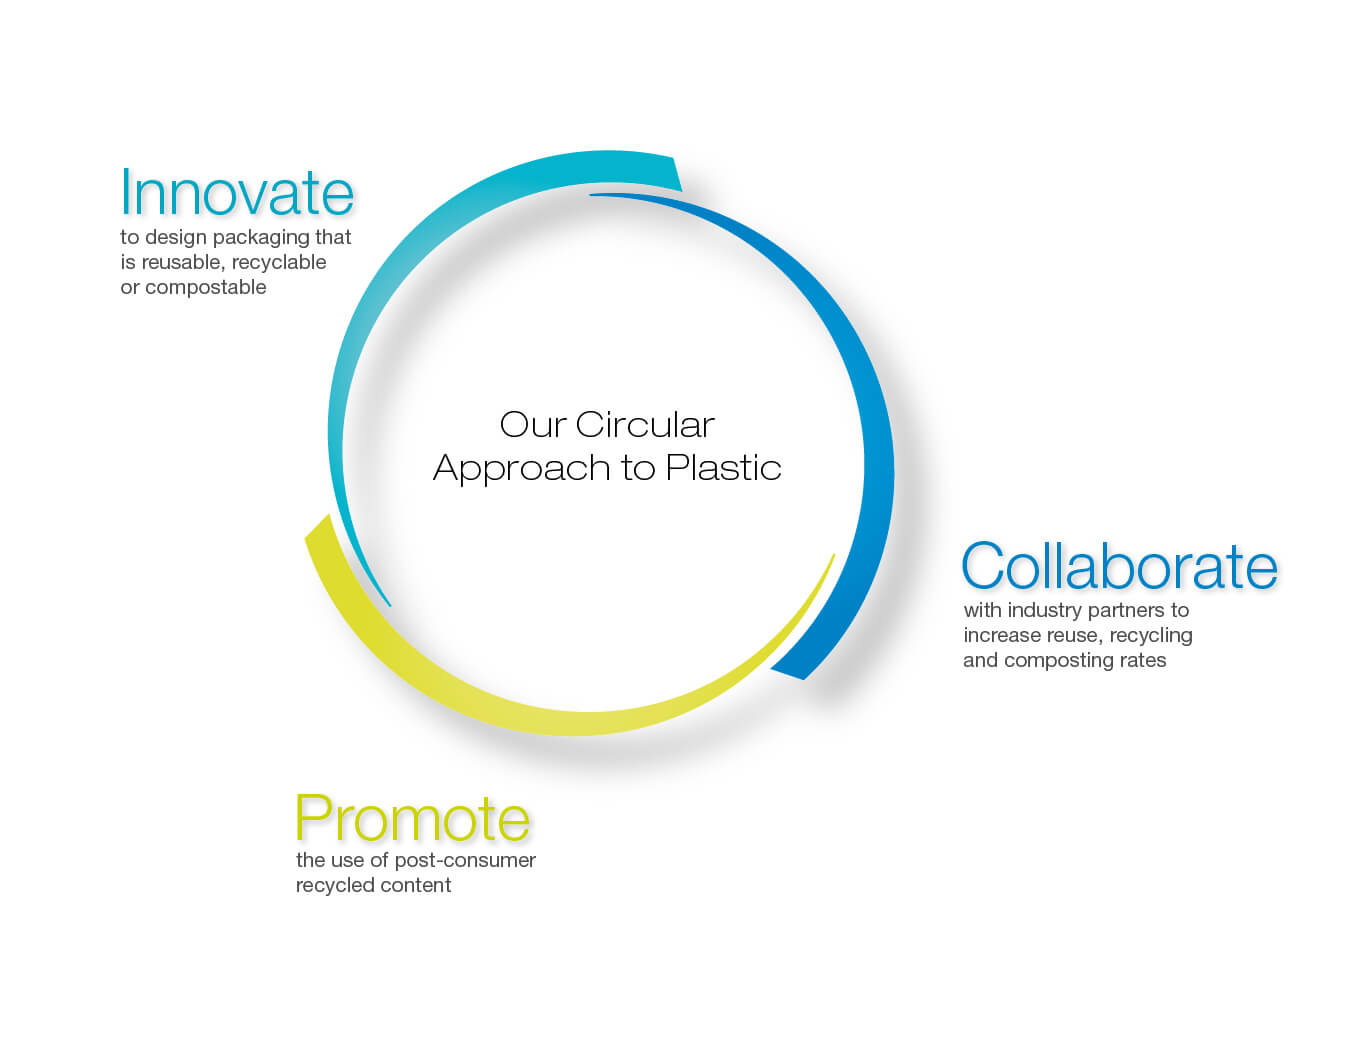 CIRCULAR APPROACH TO PLASTIC